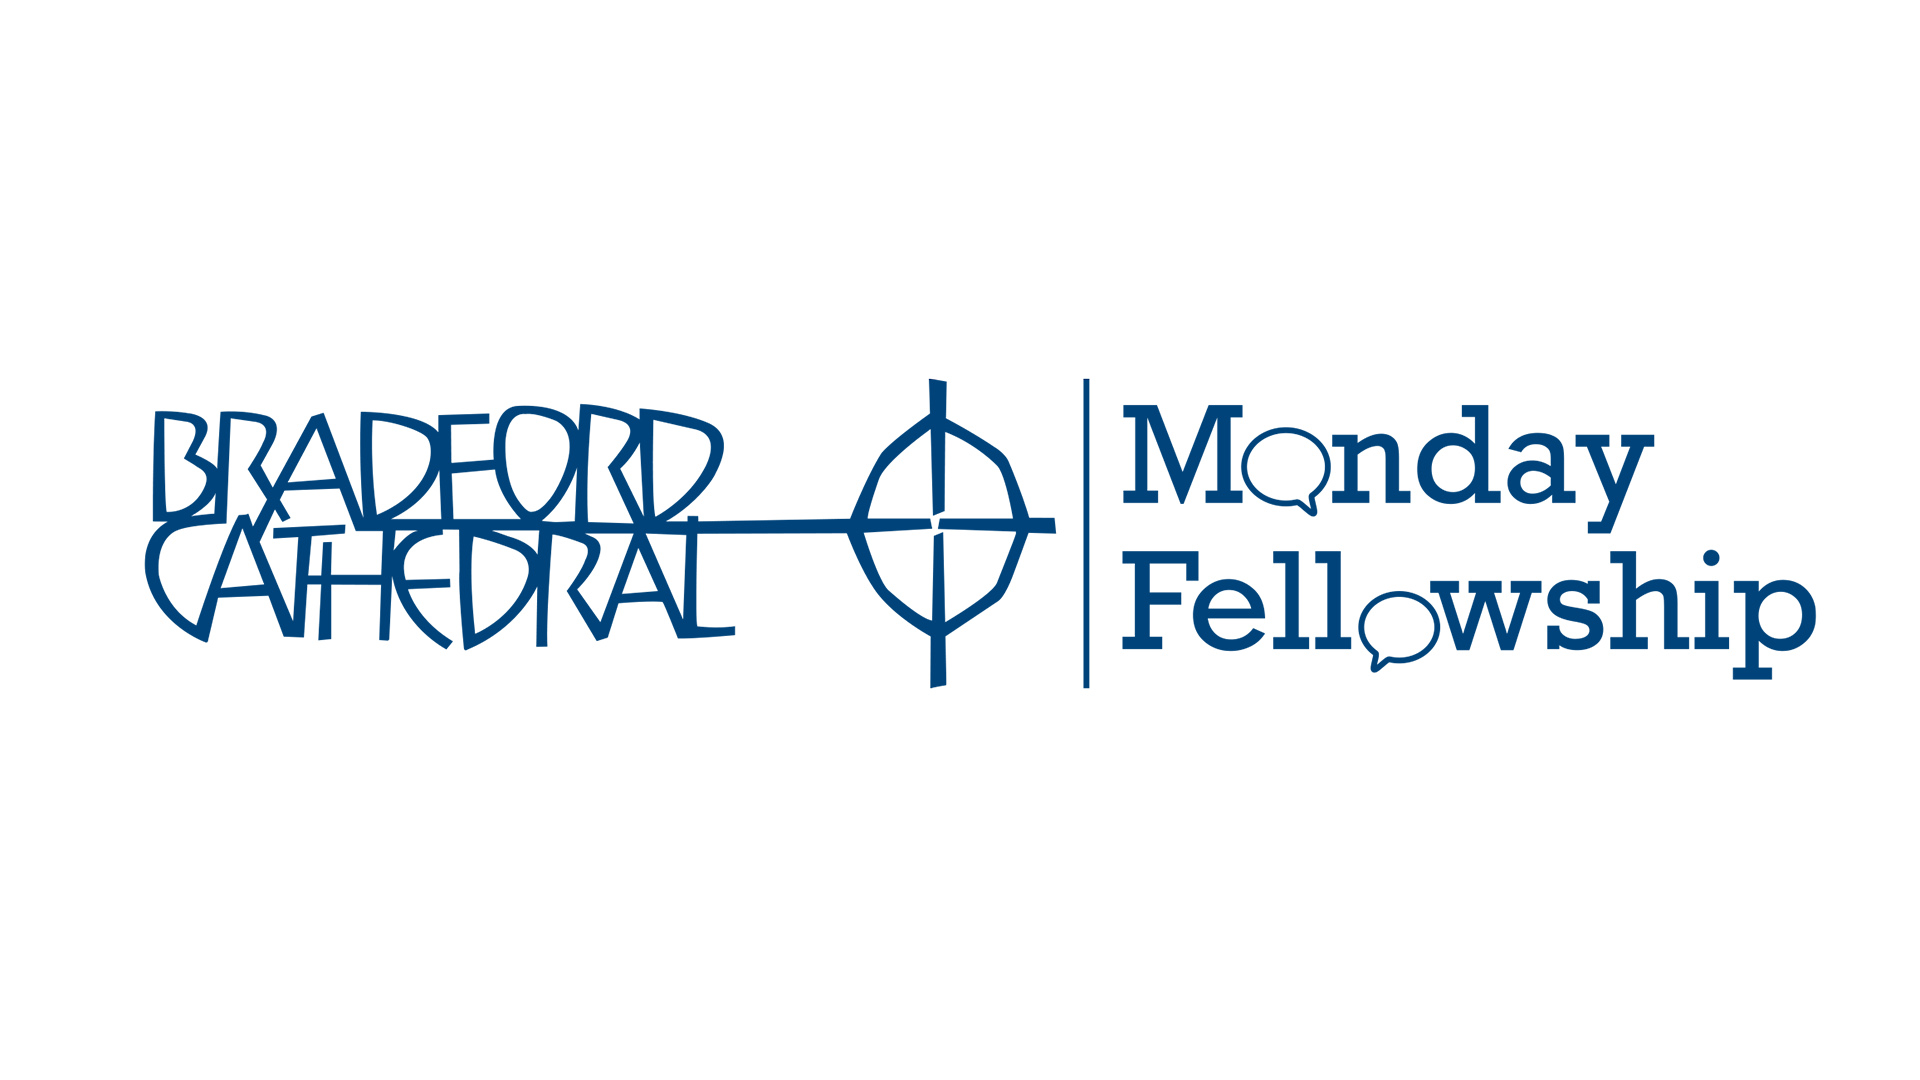 Monday Fellowship: Is it possible to be a Christian in the military?